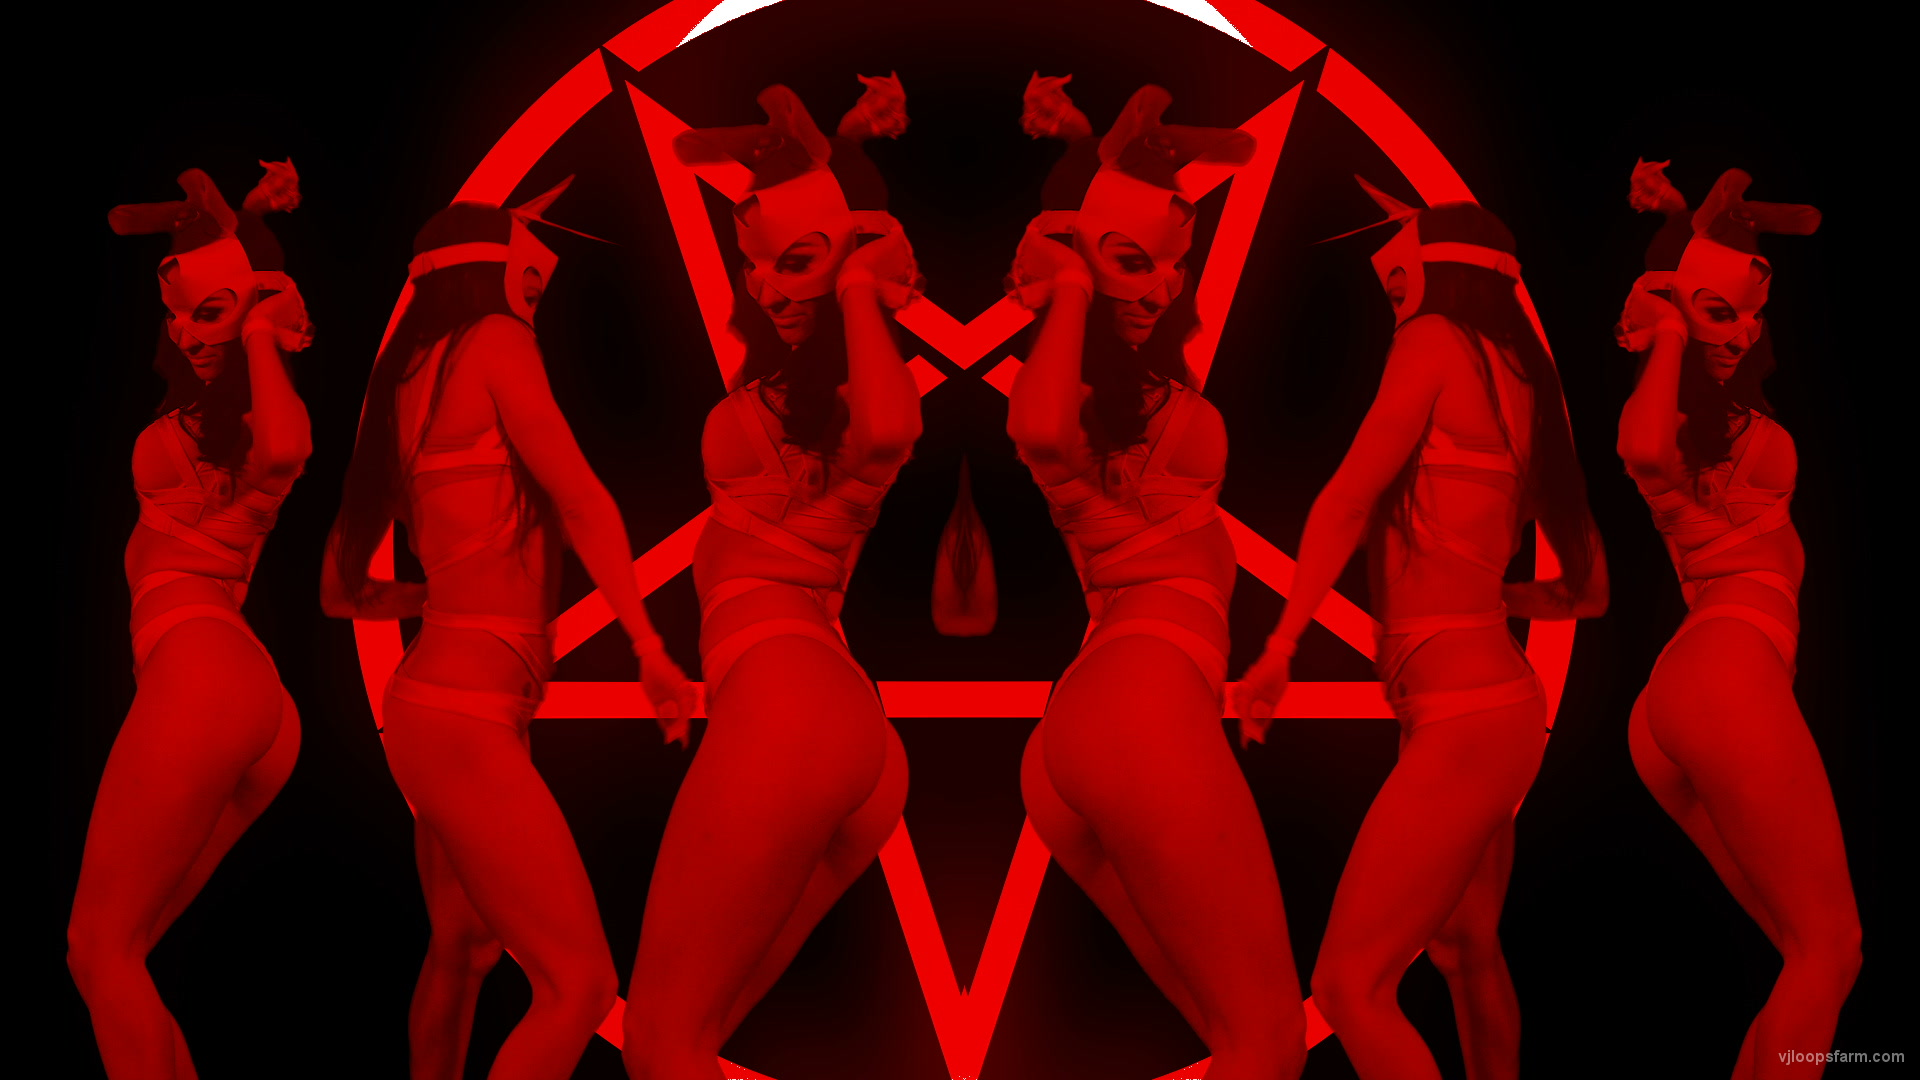 vj video background EVIL-Frau-Rabbit-LIMEART-VJ-Loop-2_003